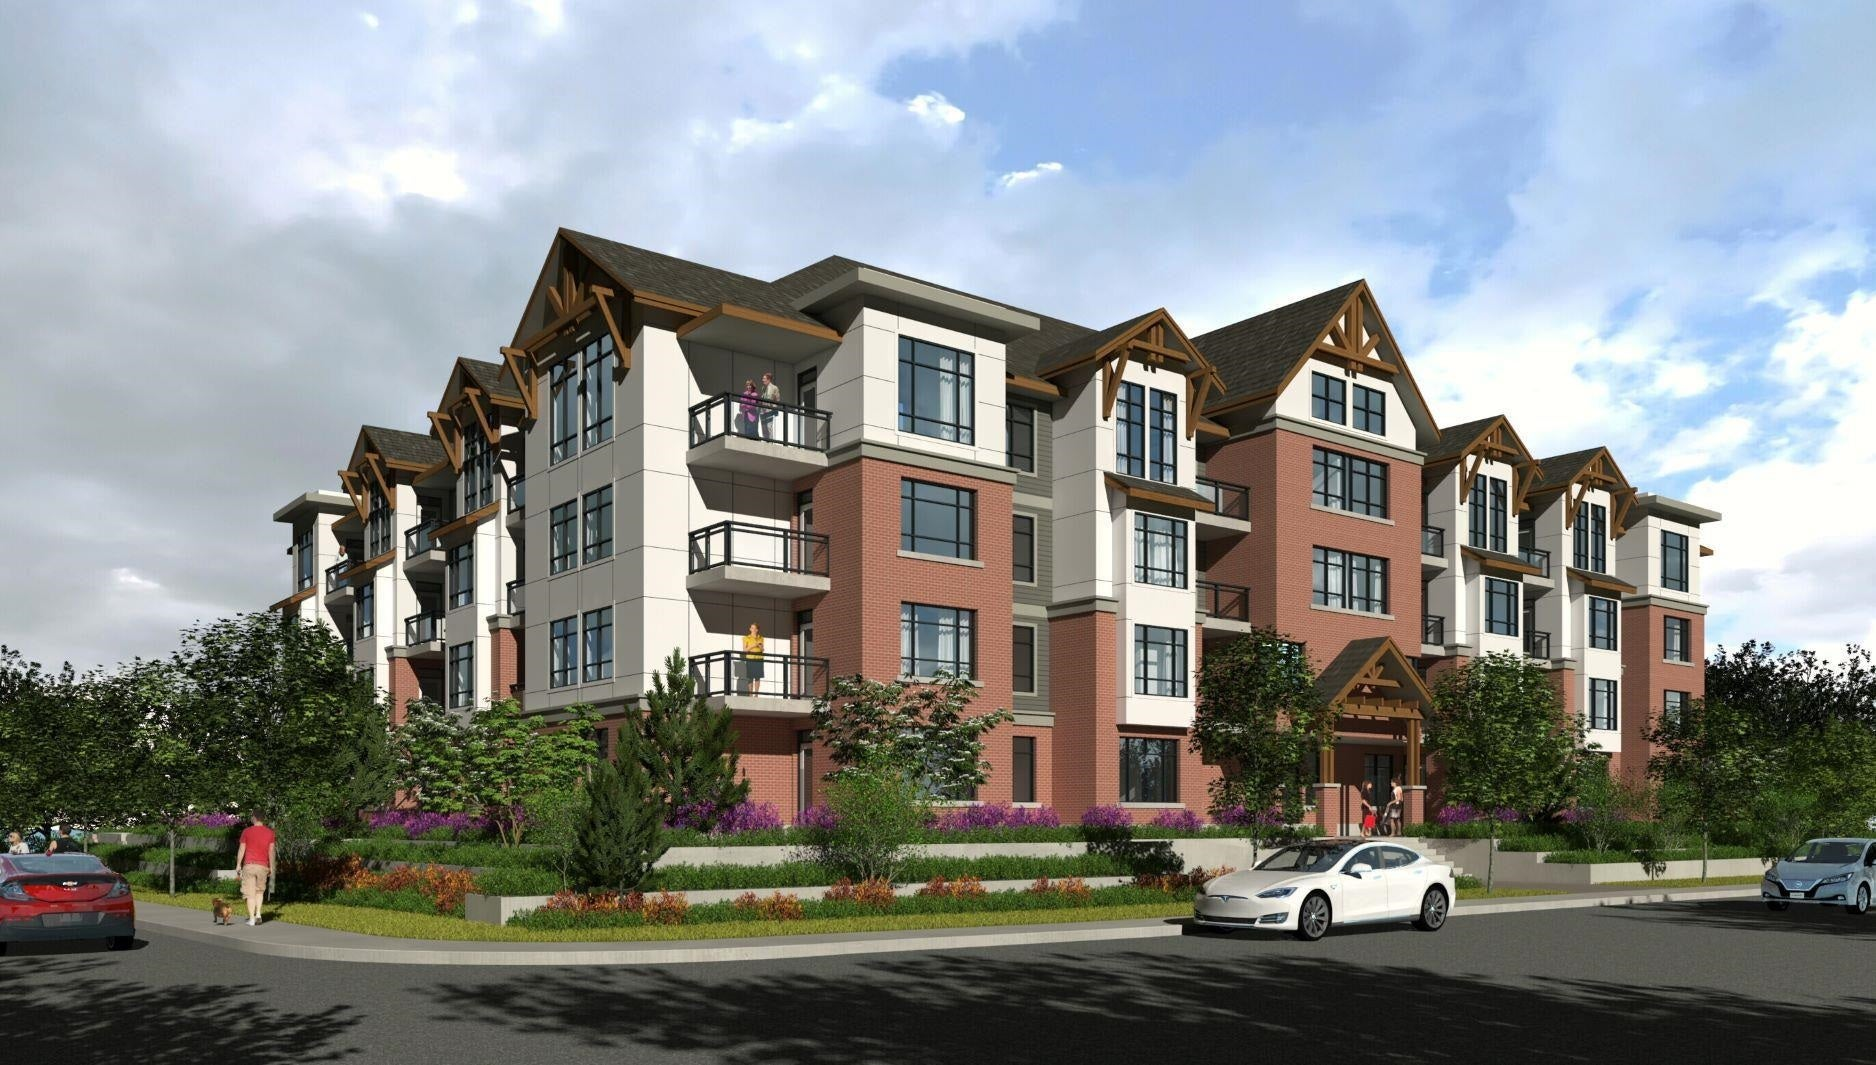 210 19945 BRYDON CRESCENT - Langley City Apartment/Condo for sale, 2 Bedrooms (R2620710) - #1